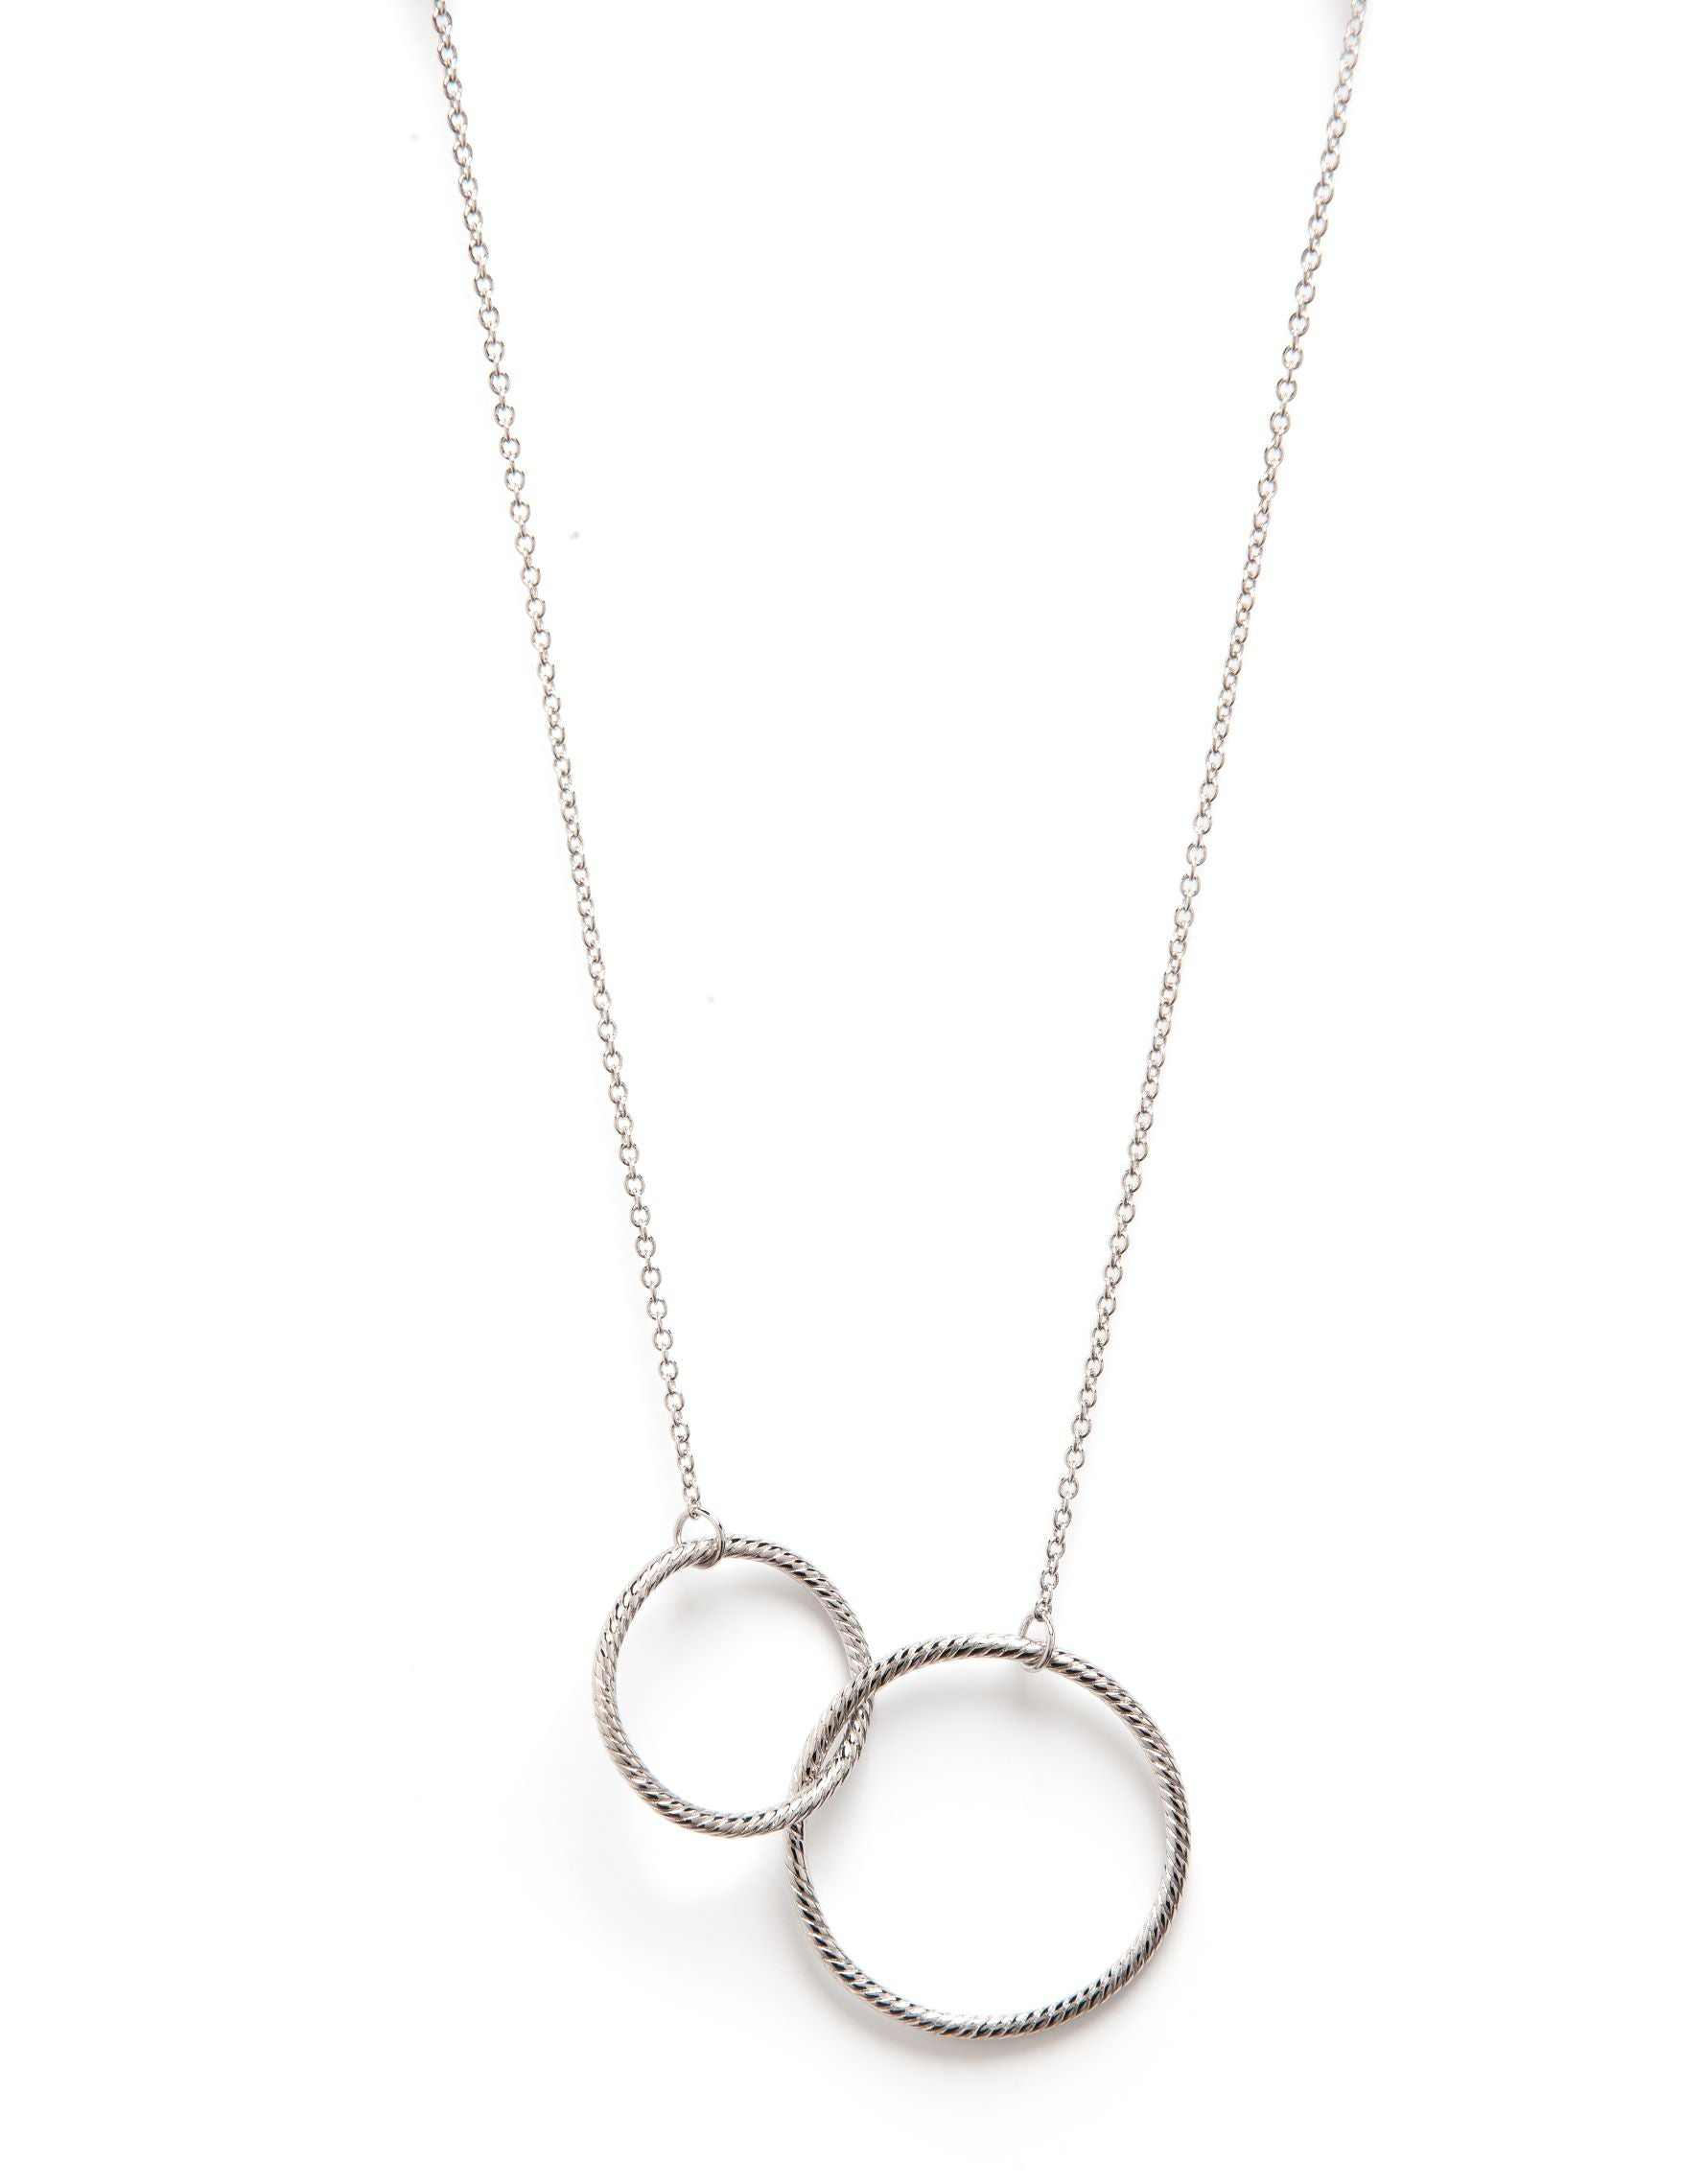 White Rhodium Interlocking Ring Necklace